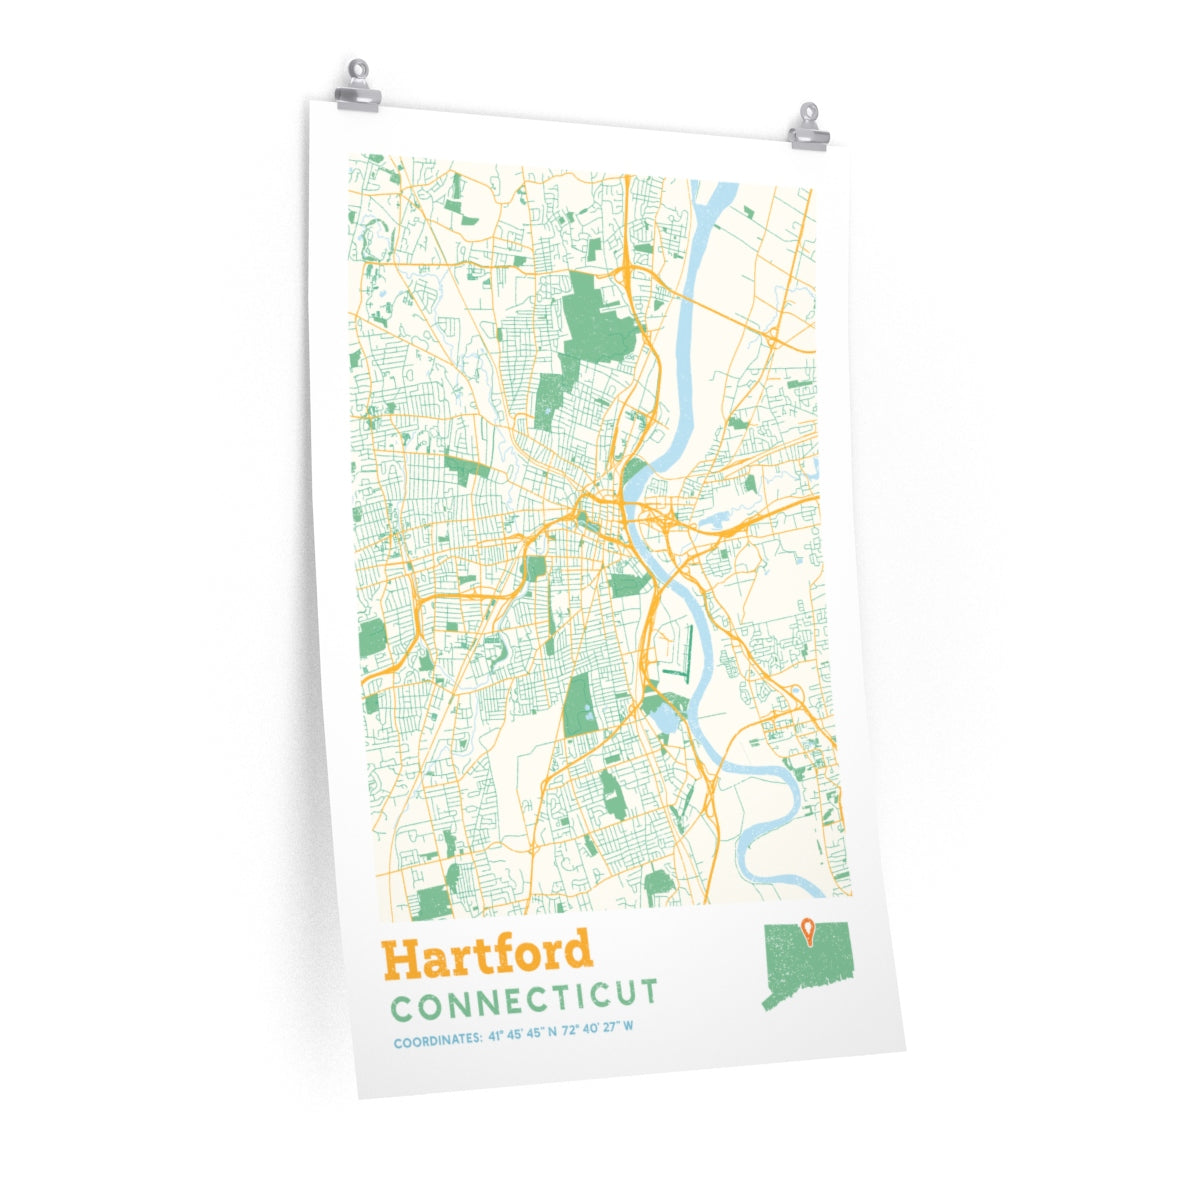 Hartford Connecticut City Street Map Poster - Allegiant Goods Co.